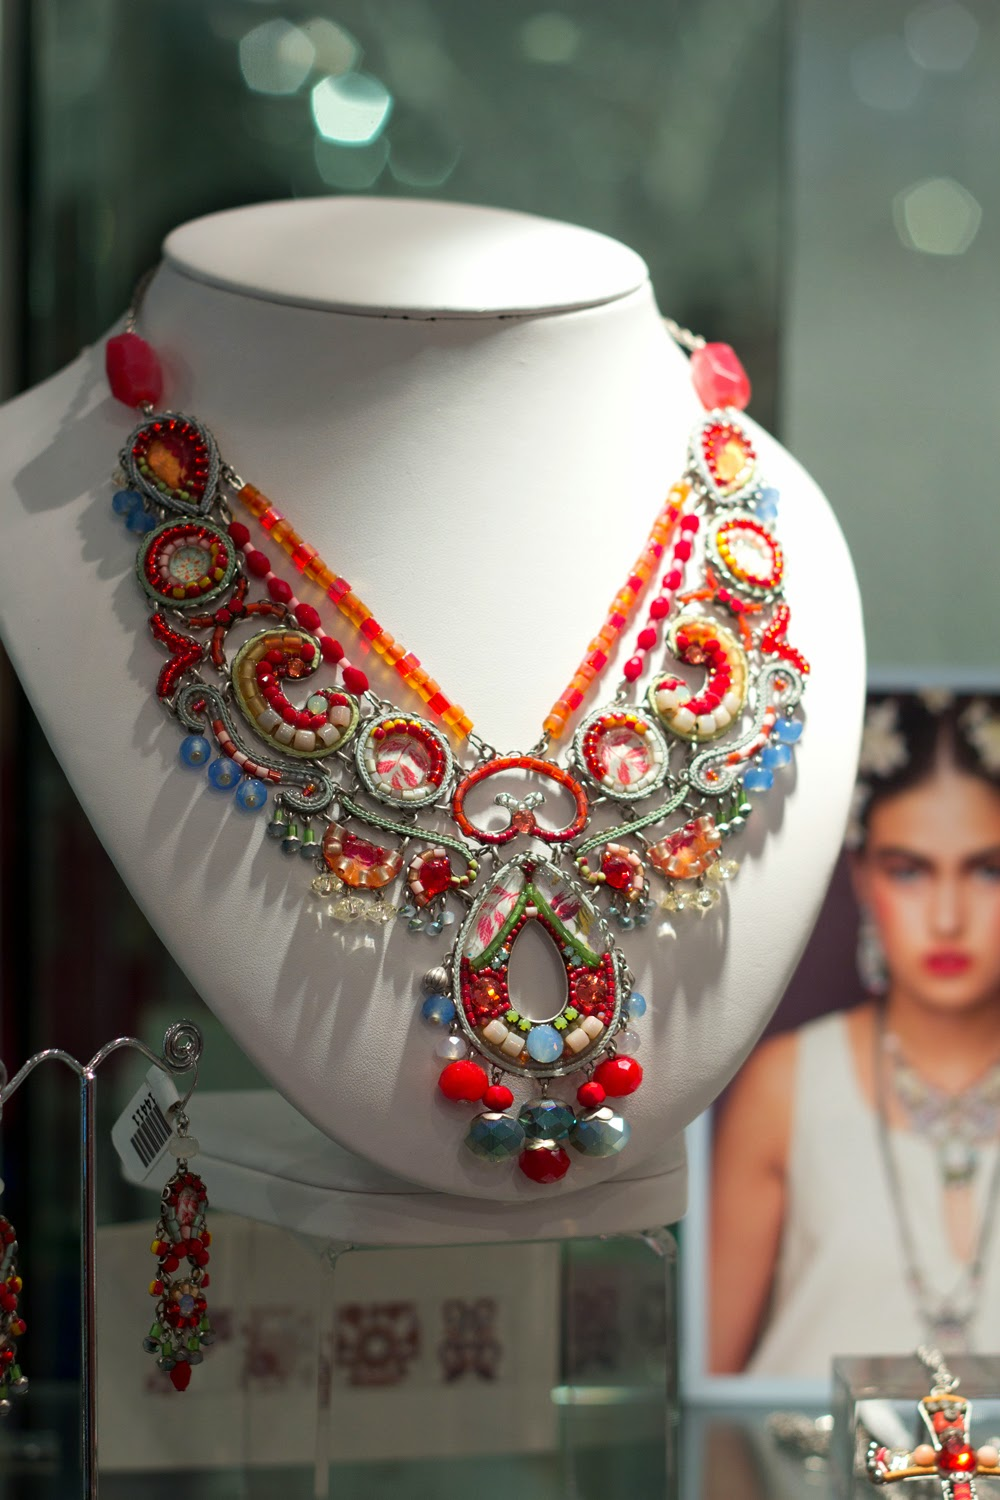 artemis-pop-up-jewellery-store-in-yorkville, hand-crafted-statement-necklace